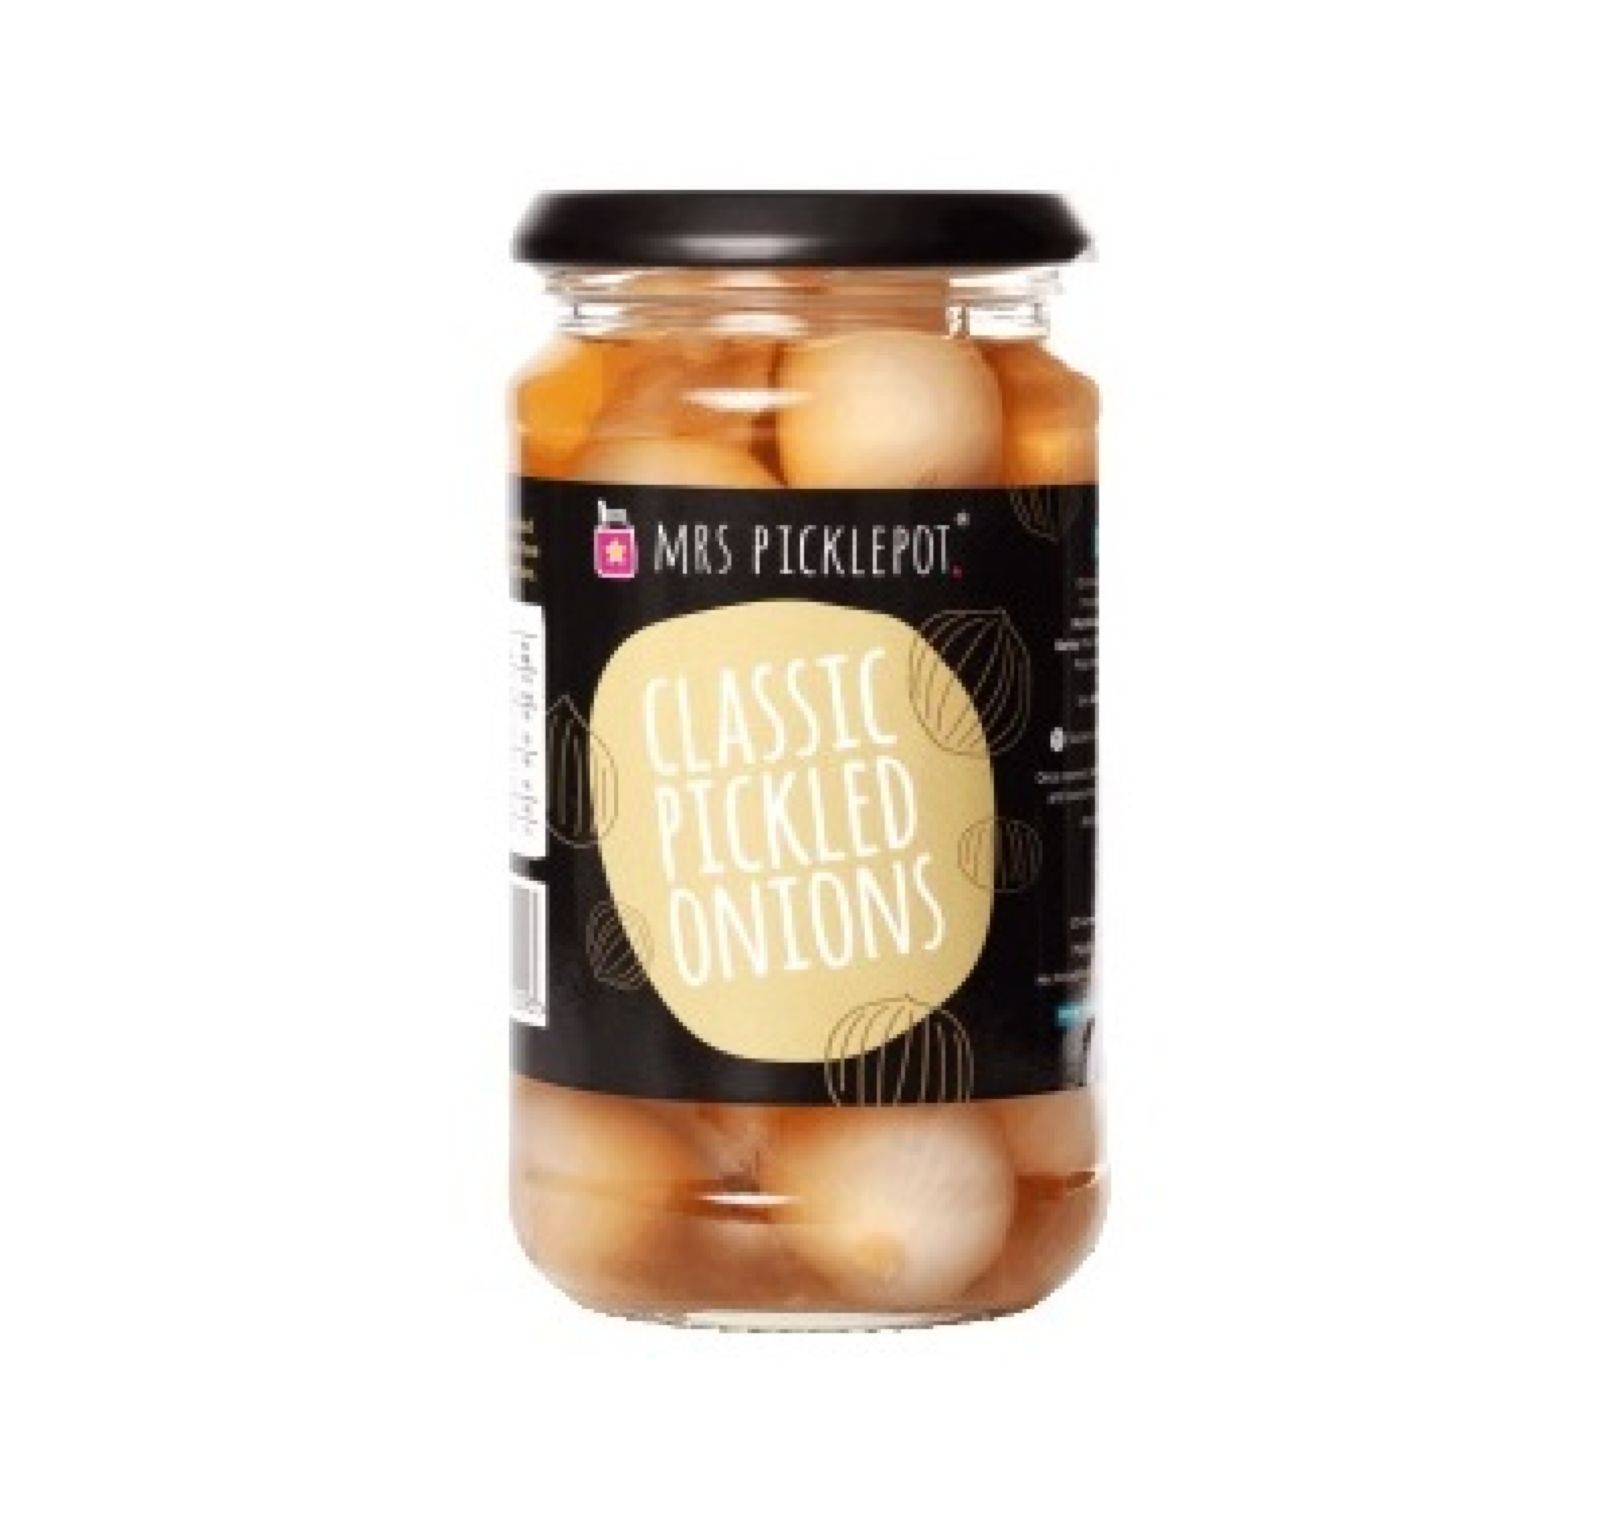 Mrs Picklepot Classic Pickled Onions